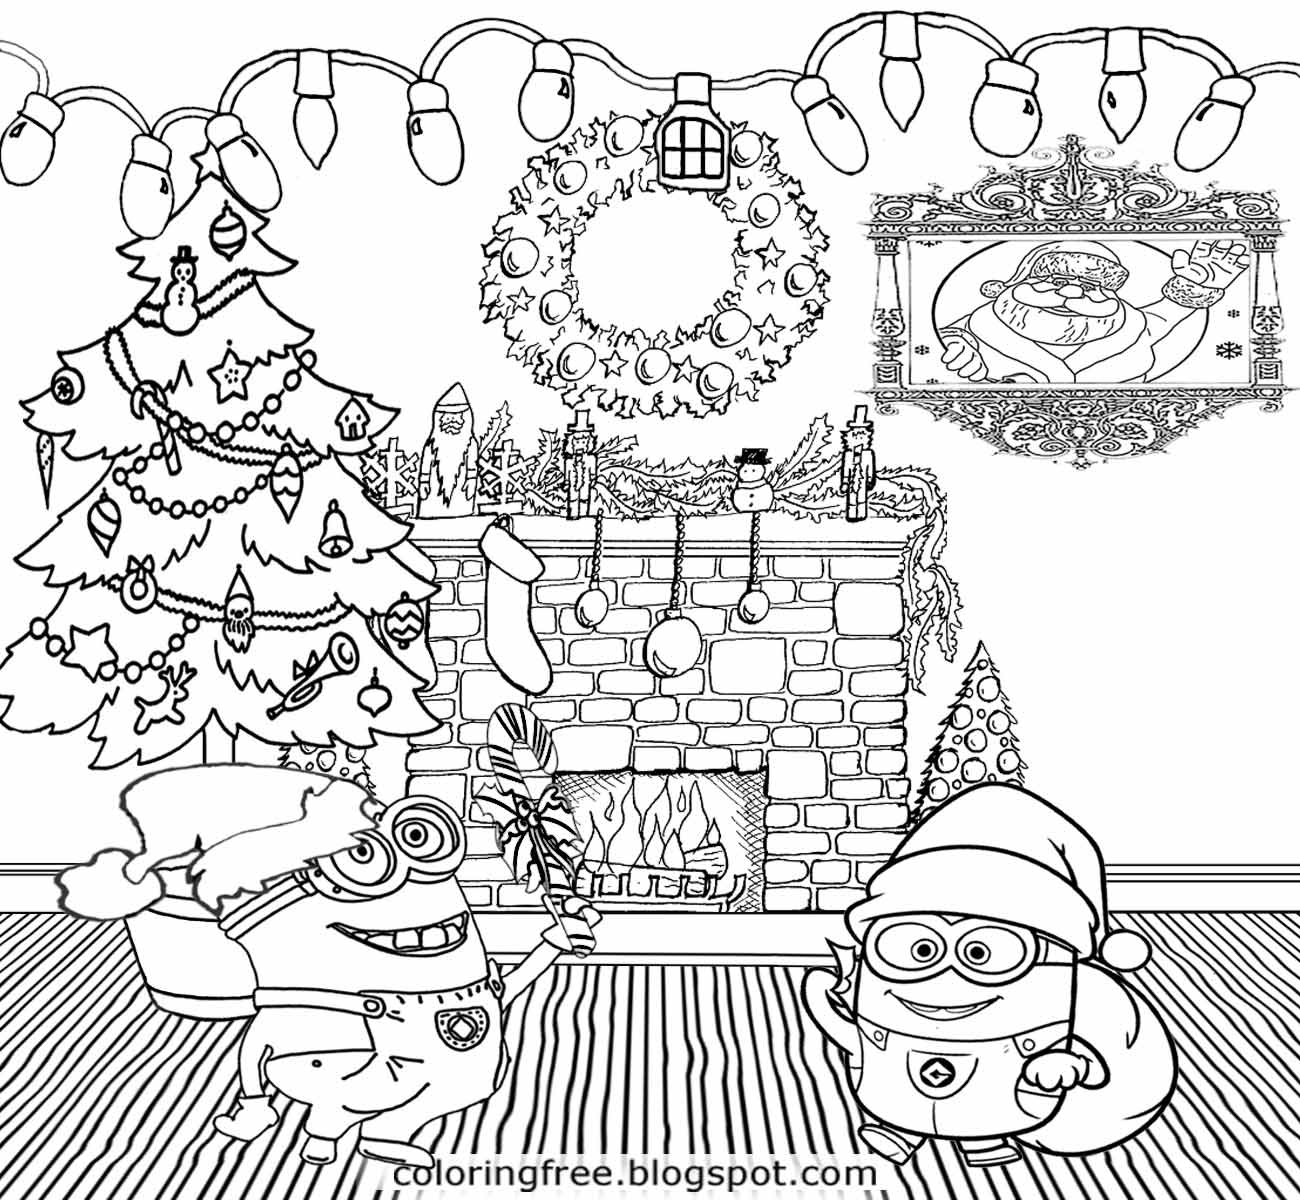 Free Coloring Pages To Print For Christmas. Xmas tree party things to draw cool merry Christmas Minions coloring pages  for teenagers print Free Coloring Pages Printable Pictures To Color Kids Drawing ideas